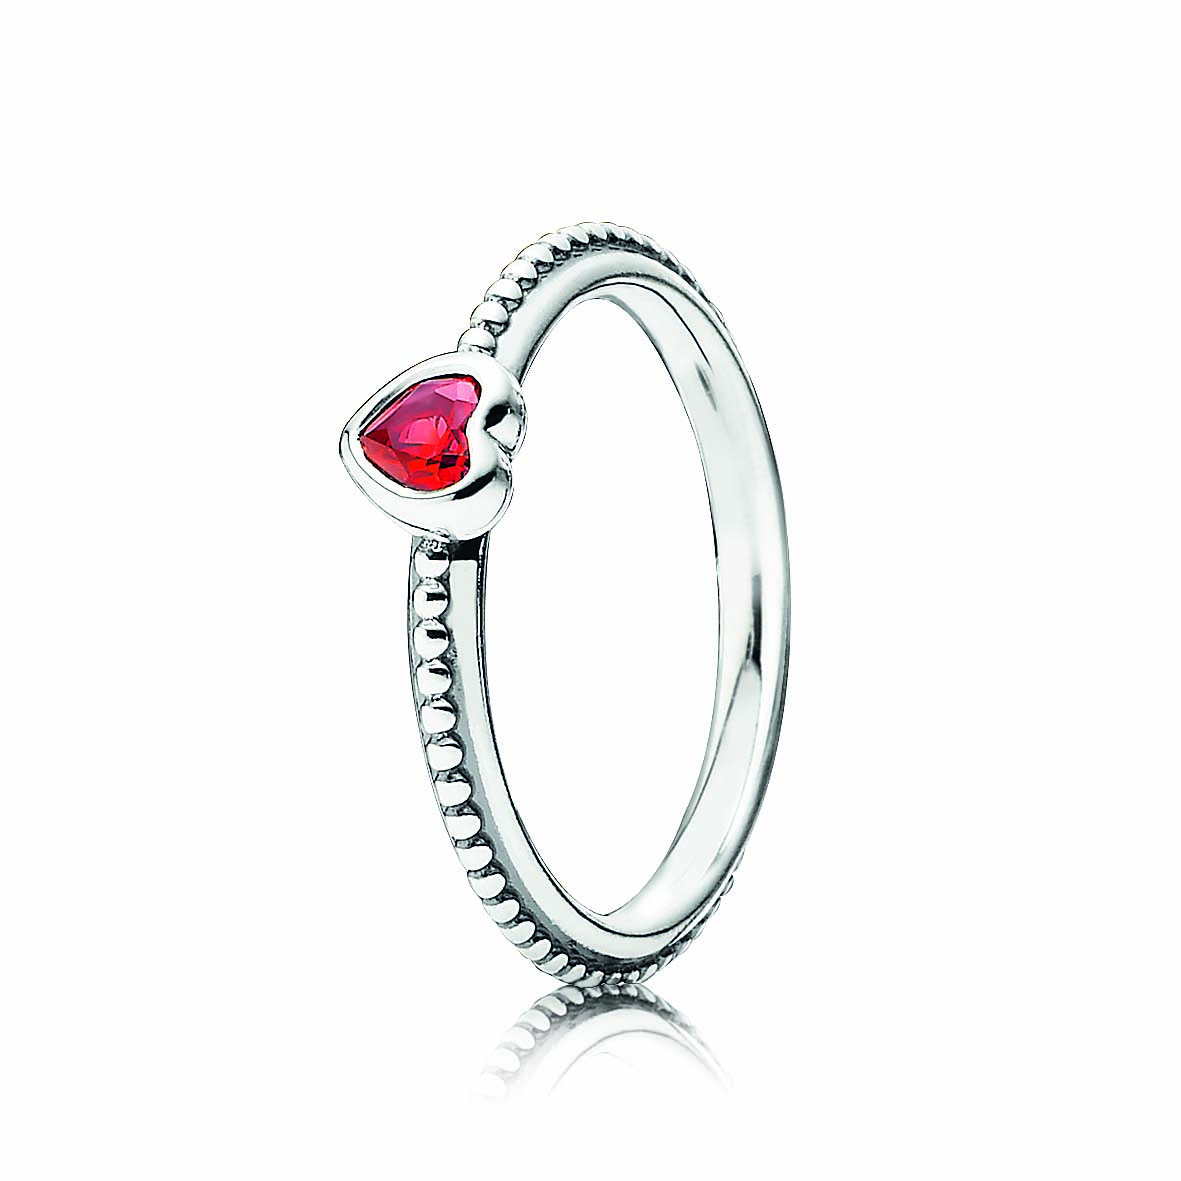 PANDORA_Valentine's 2014_Silver Heart Ring with Golden Red Synthetic Ruby_HK$399.jpg